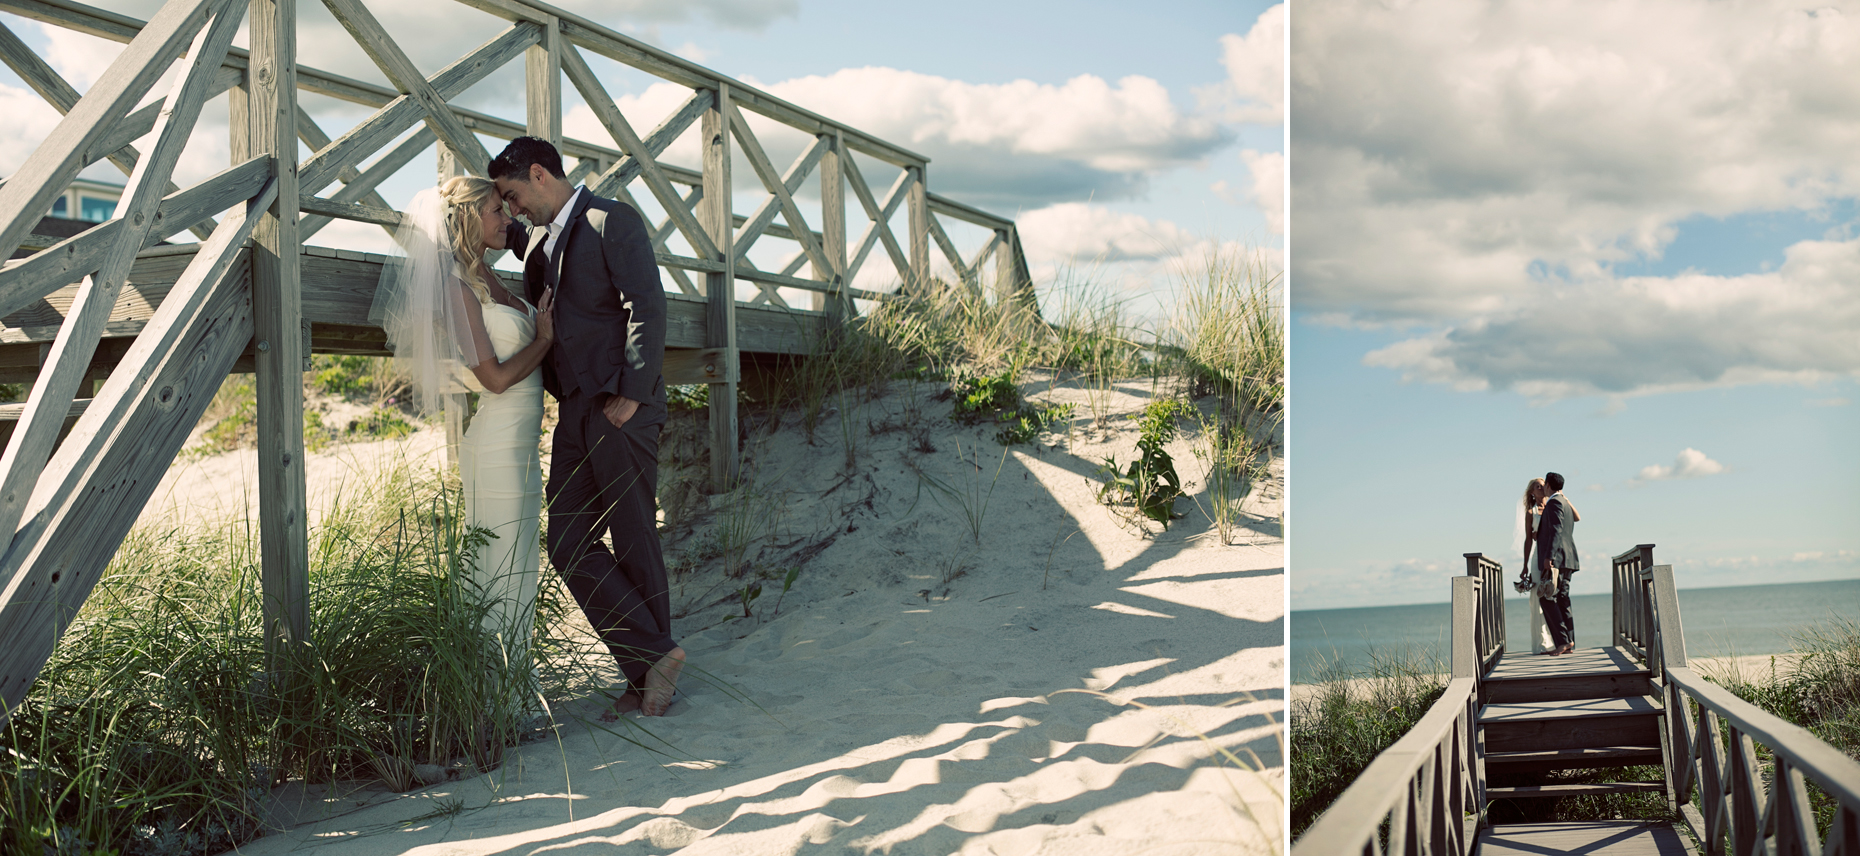 Hamptons Wedding Photographer_Jami Saunders_022